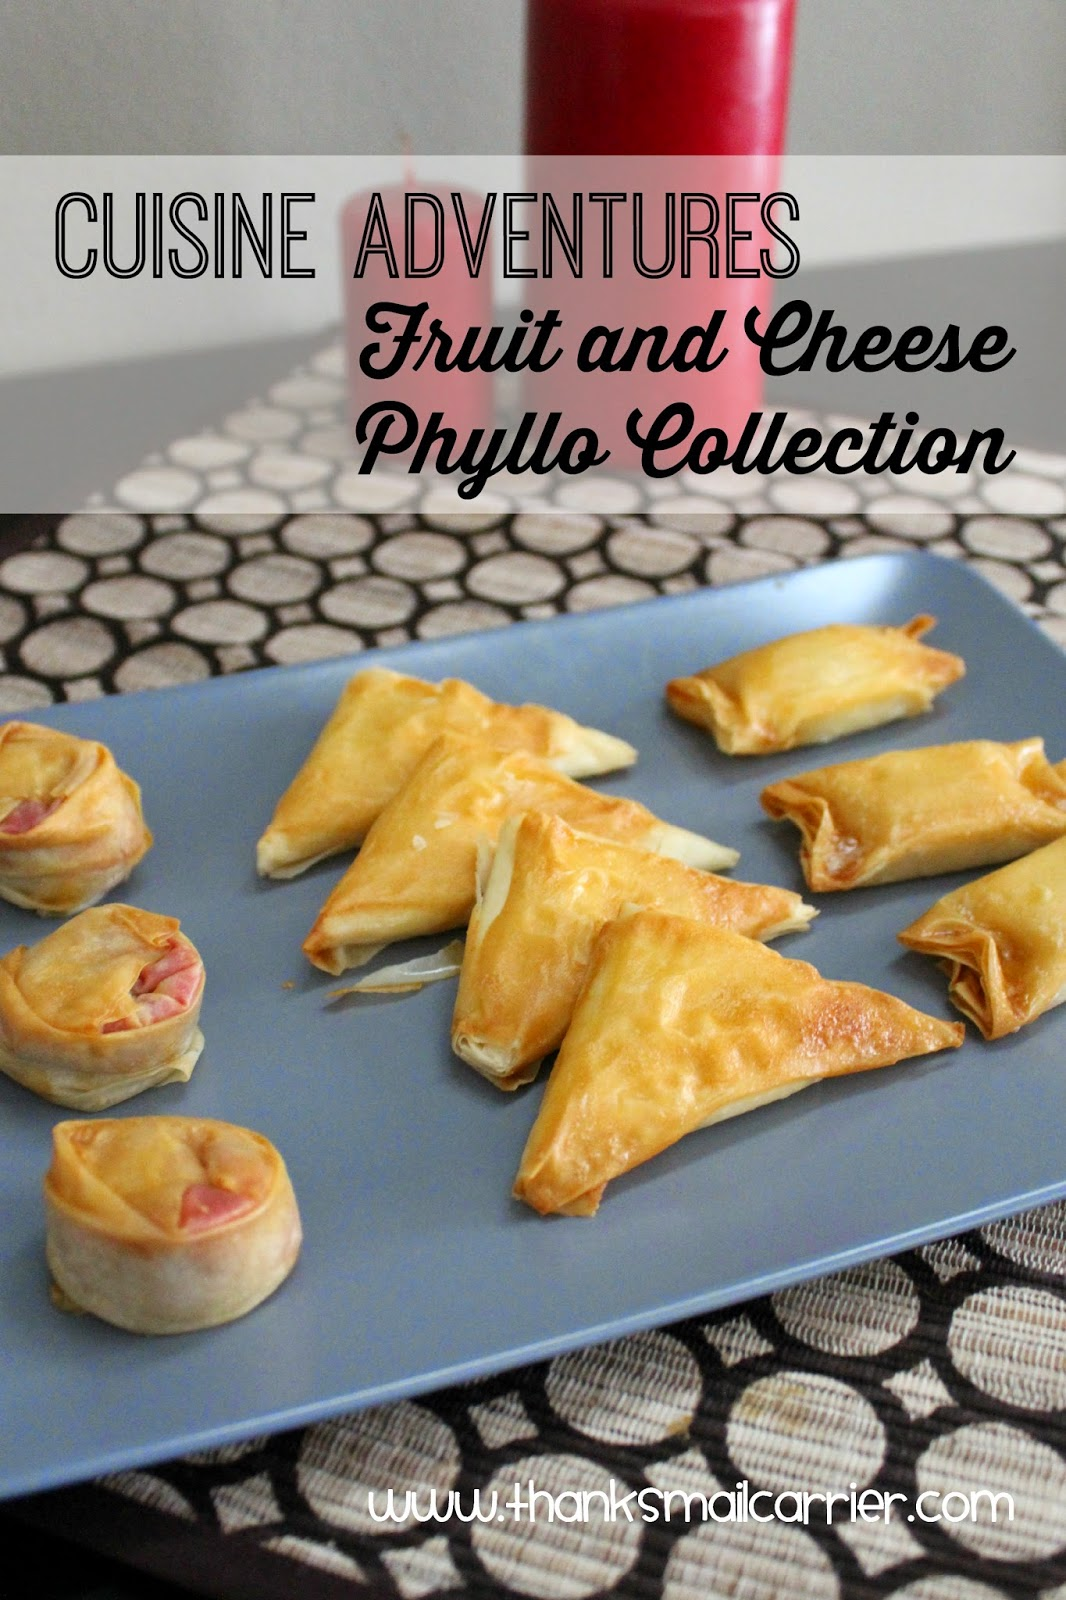 Cuisine Adventures phyllo collection review